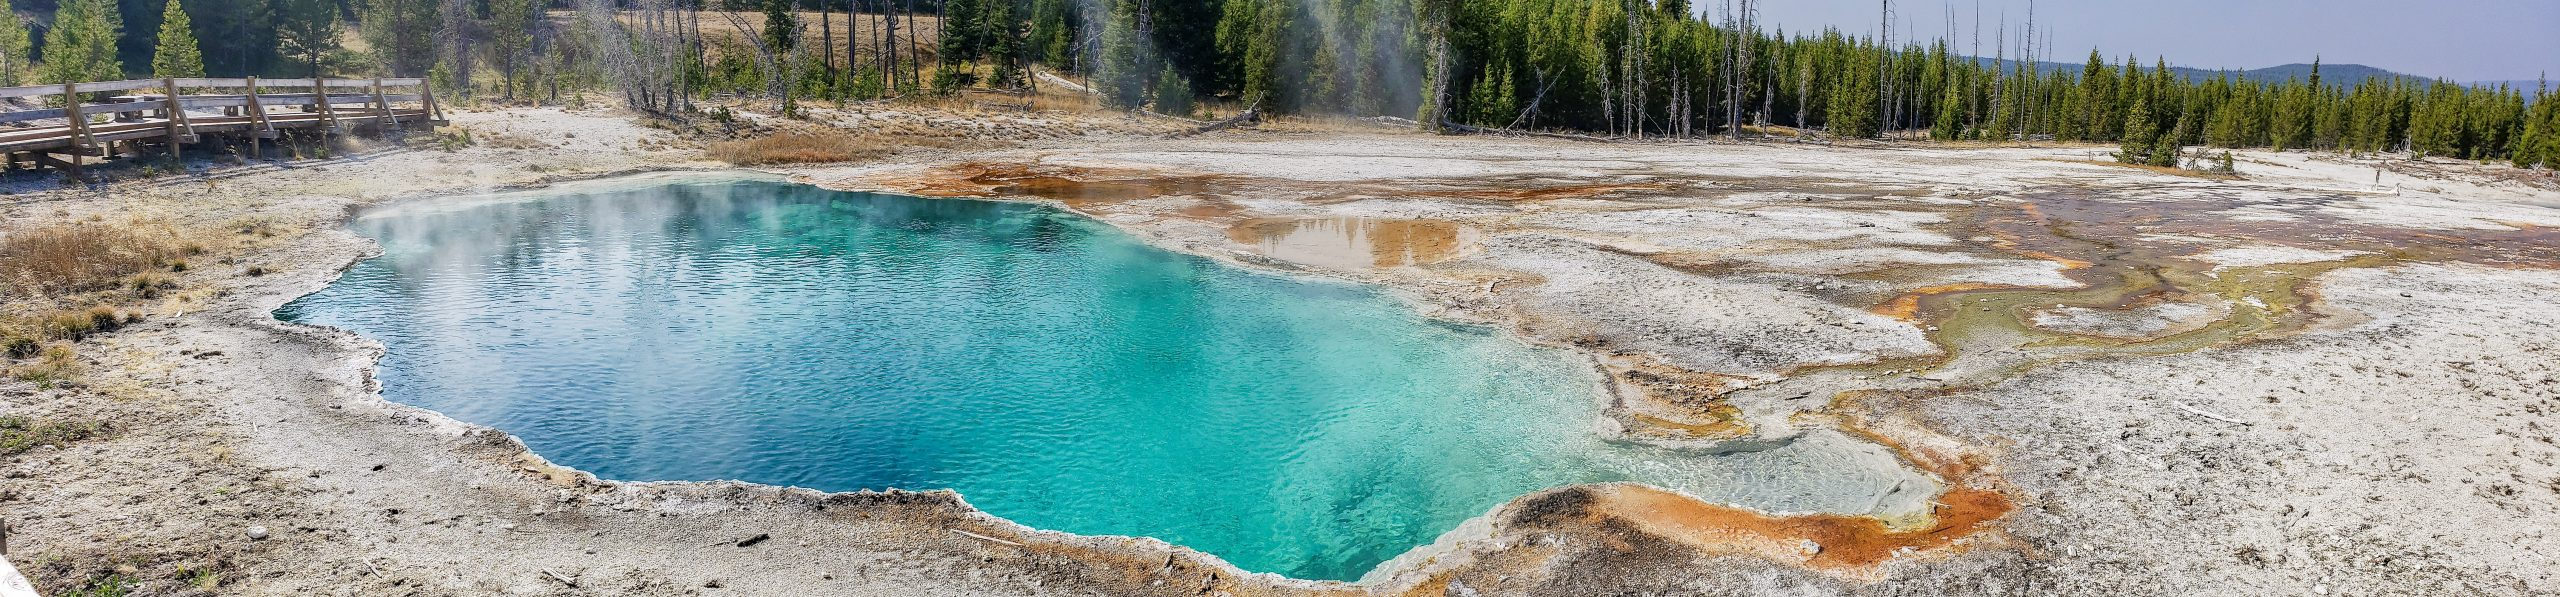 2 Epic Days in Yellowstone National Park | Itinerary